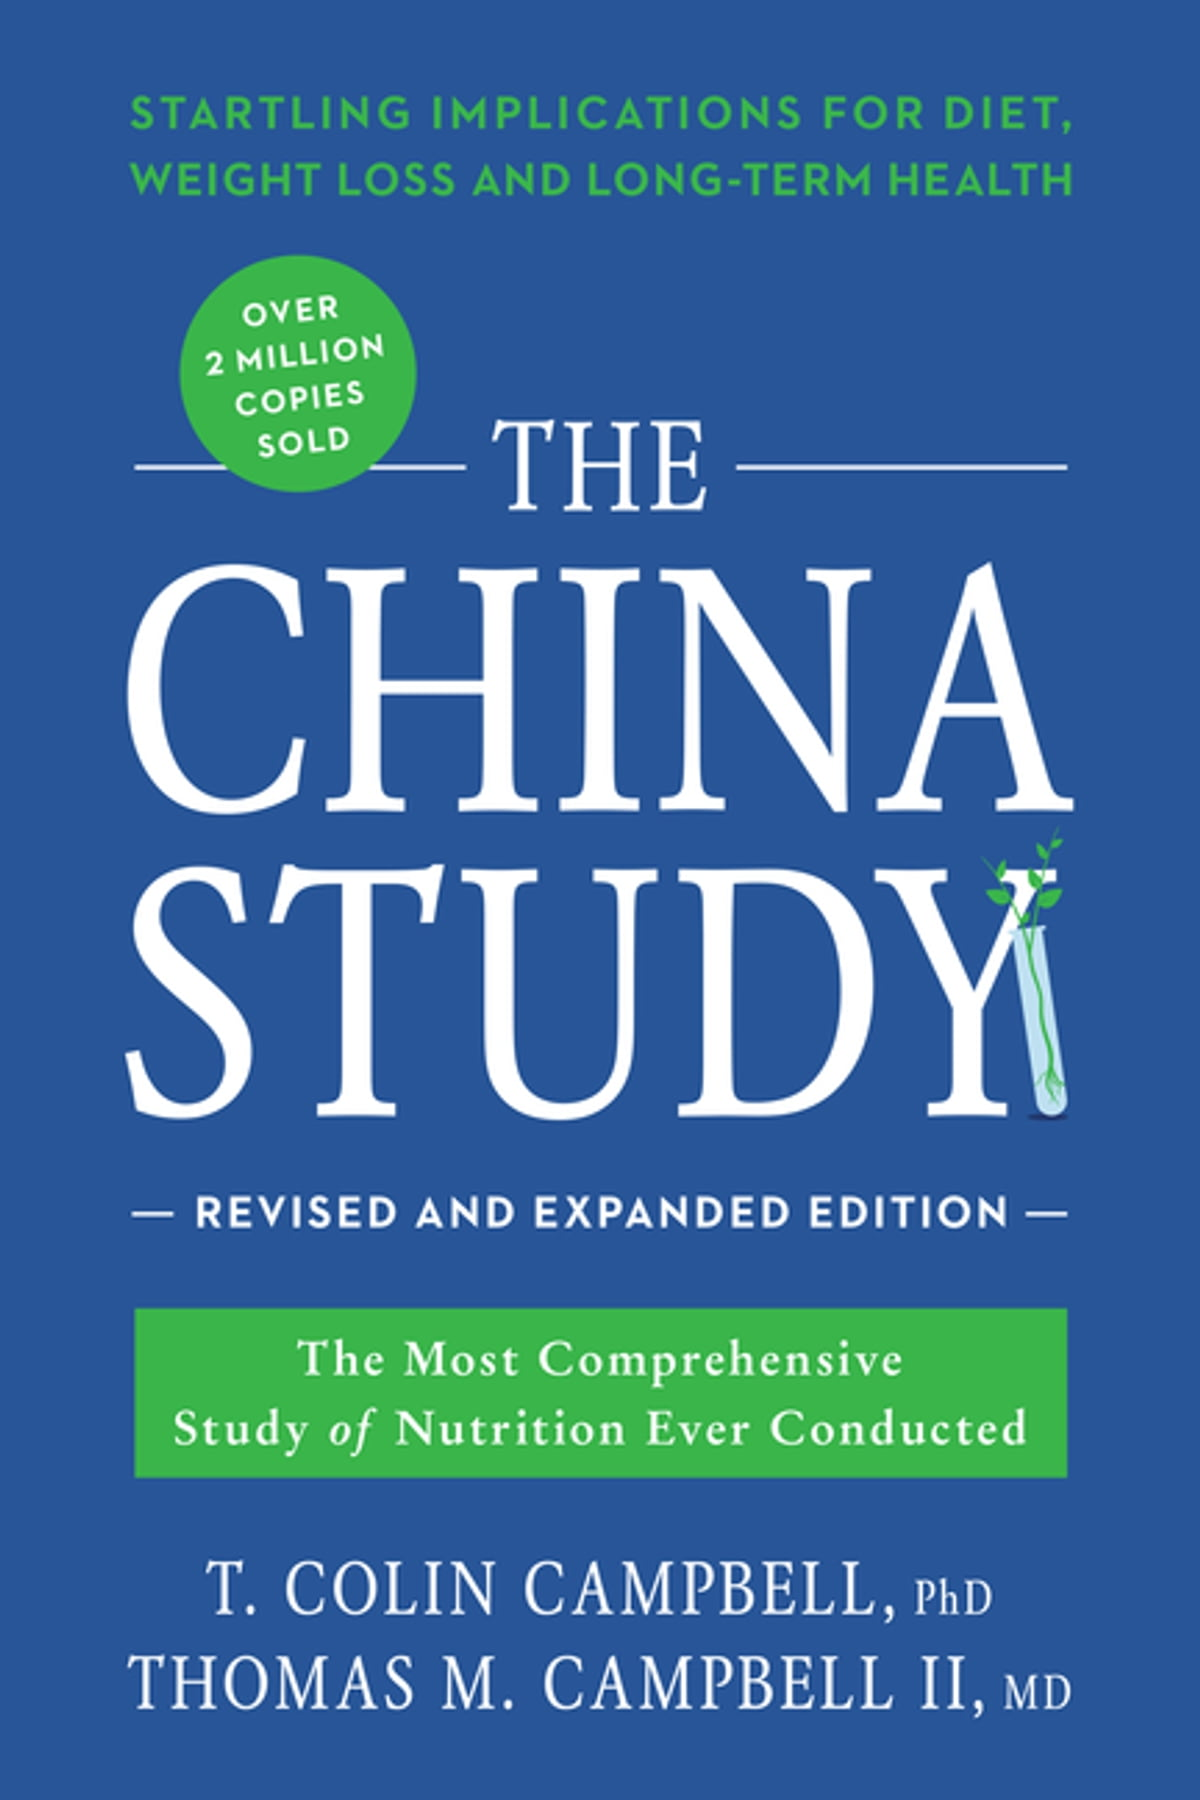 The China Study: Revised and Expanded Edition eBook by T. Colin Campbell -  9781942952909   Rakuten Kobo